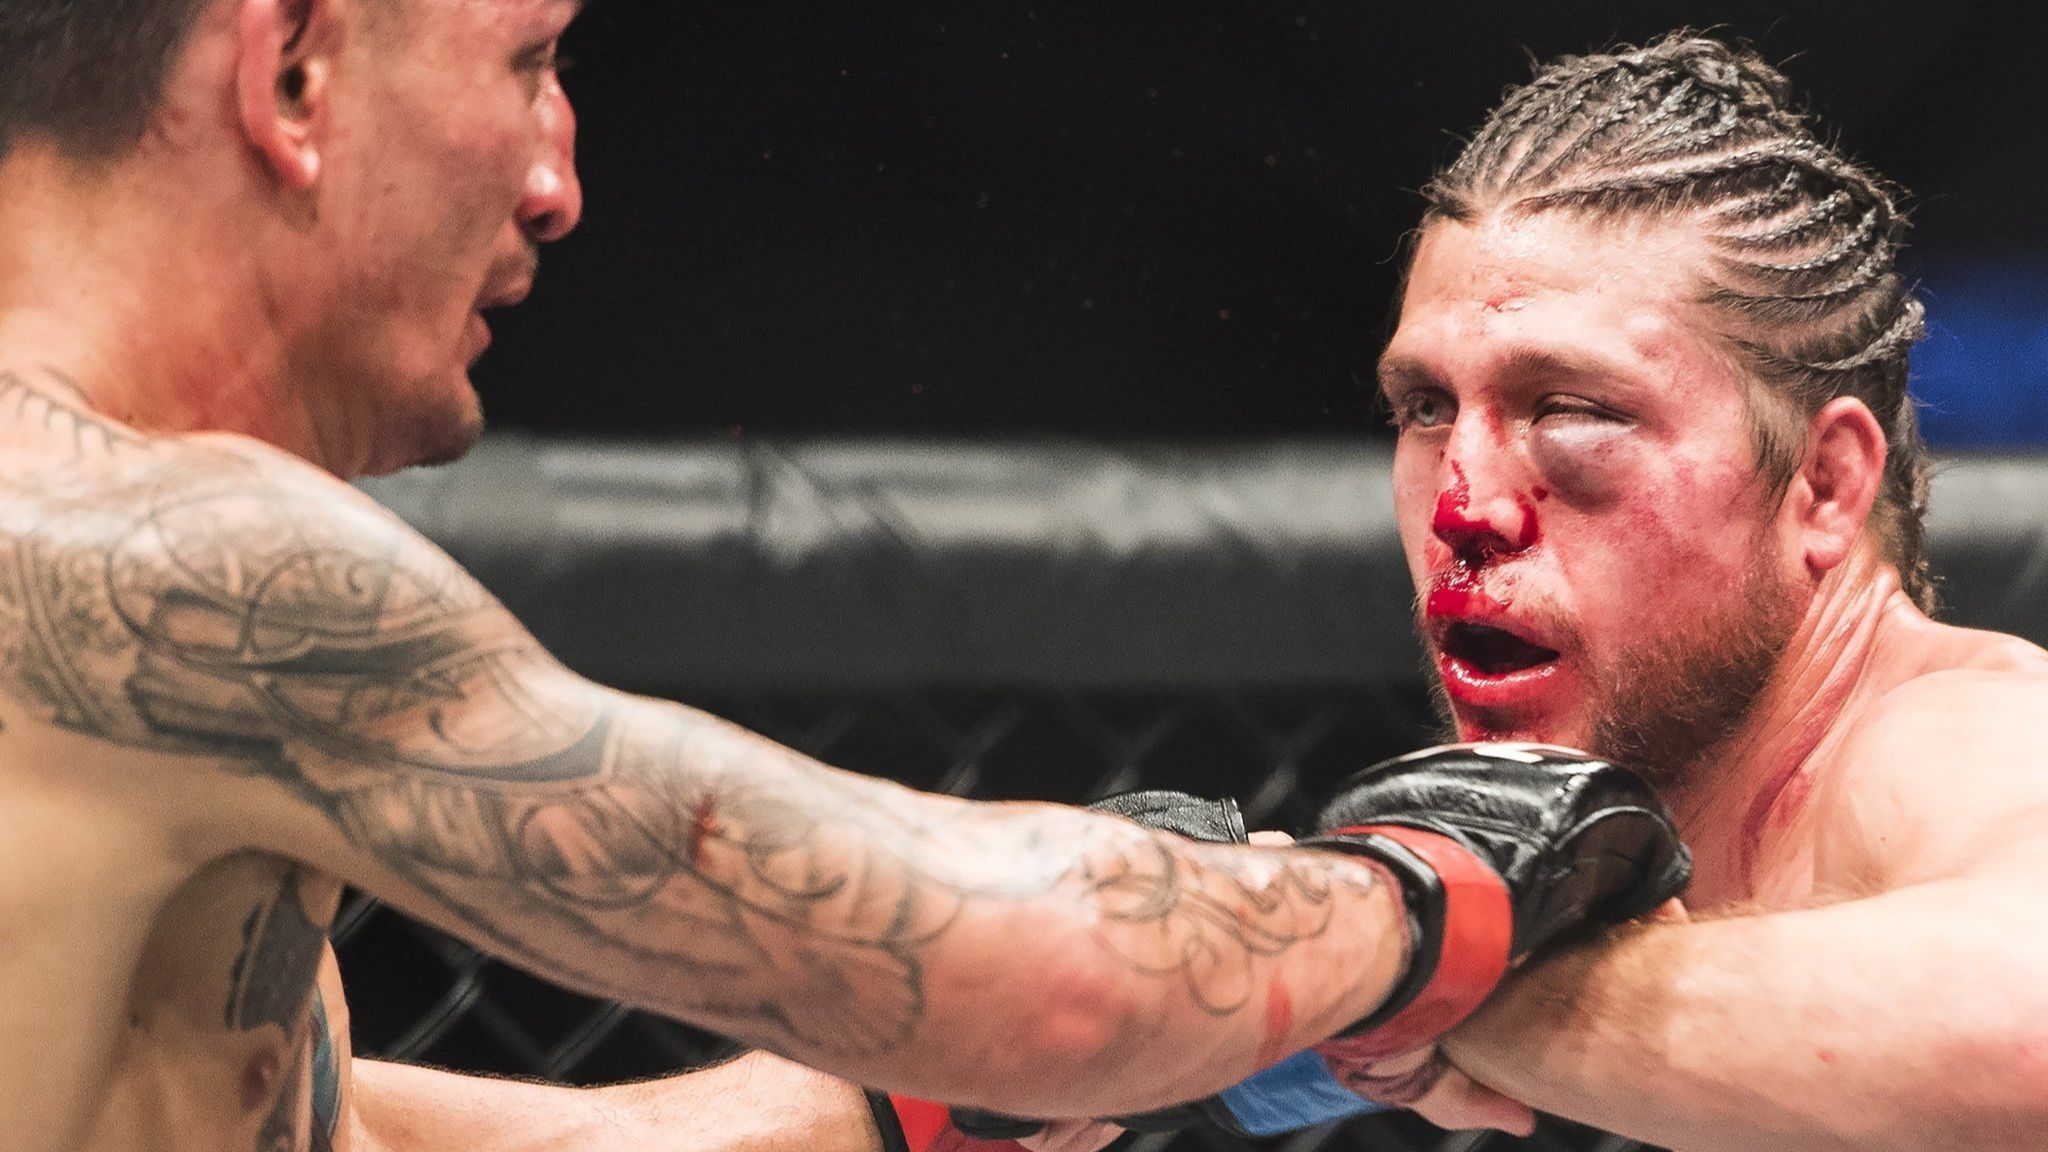 What's next after epic slugfest by Max Holloway and Brian Ortega set a UFC record for most significant strikes?